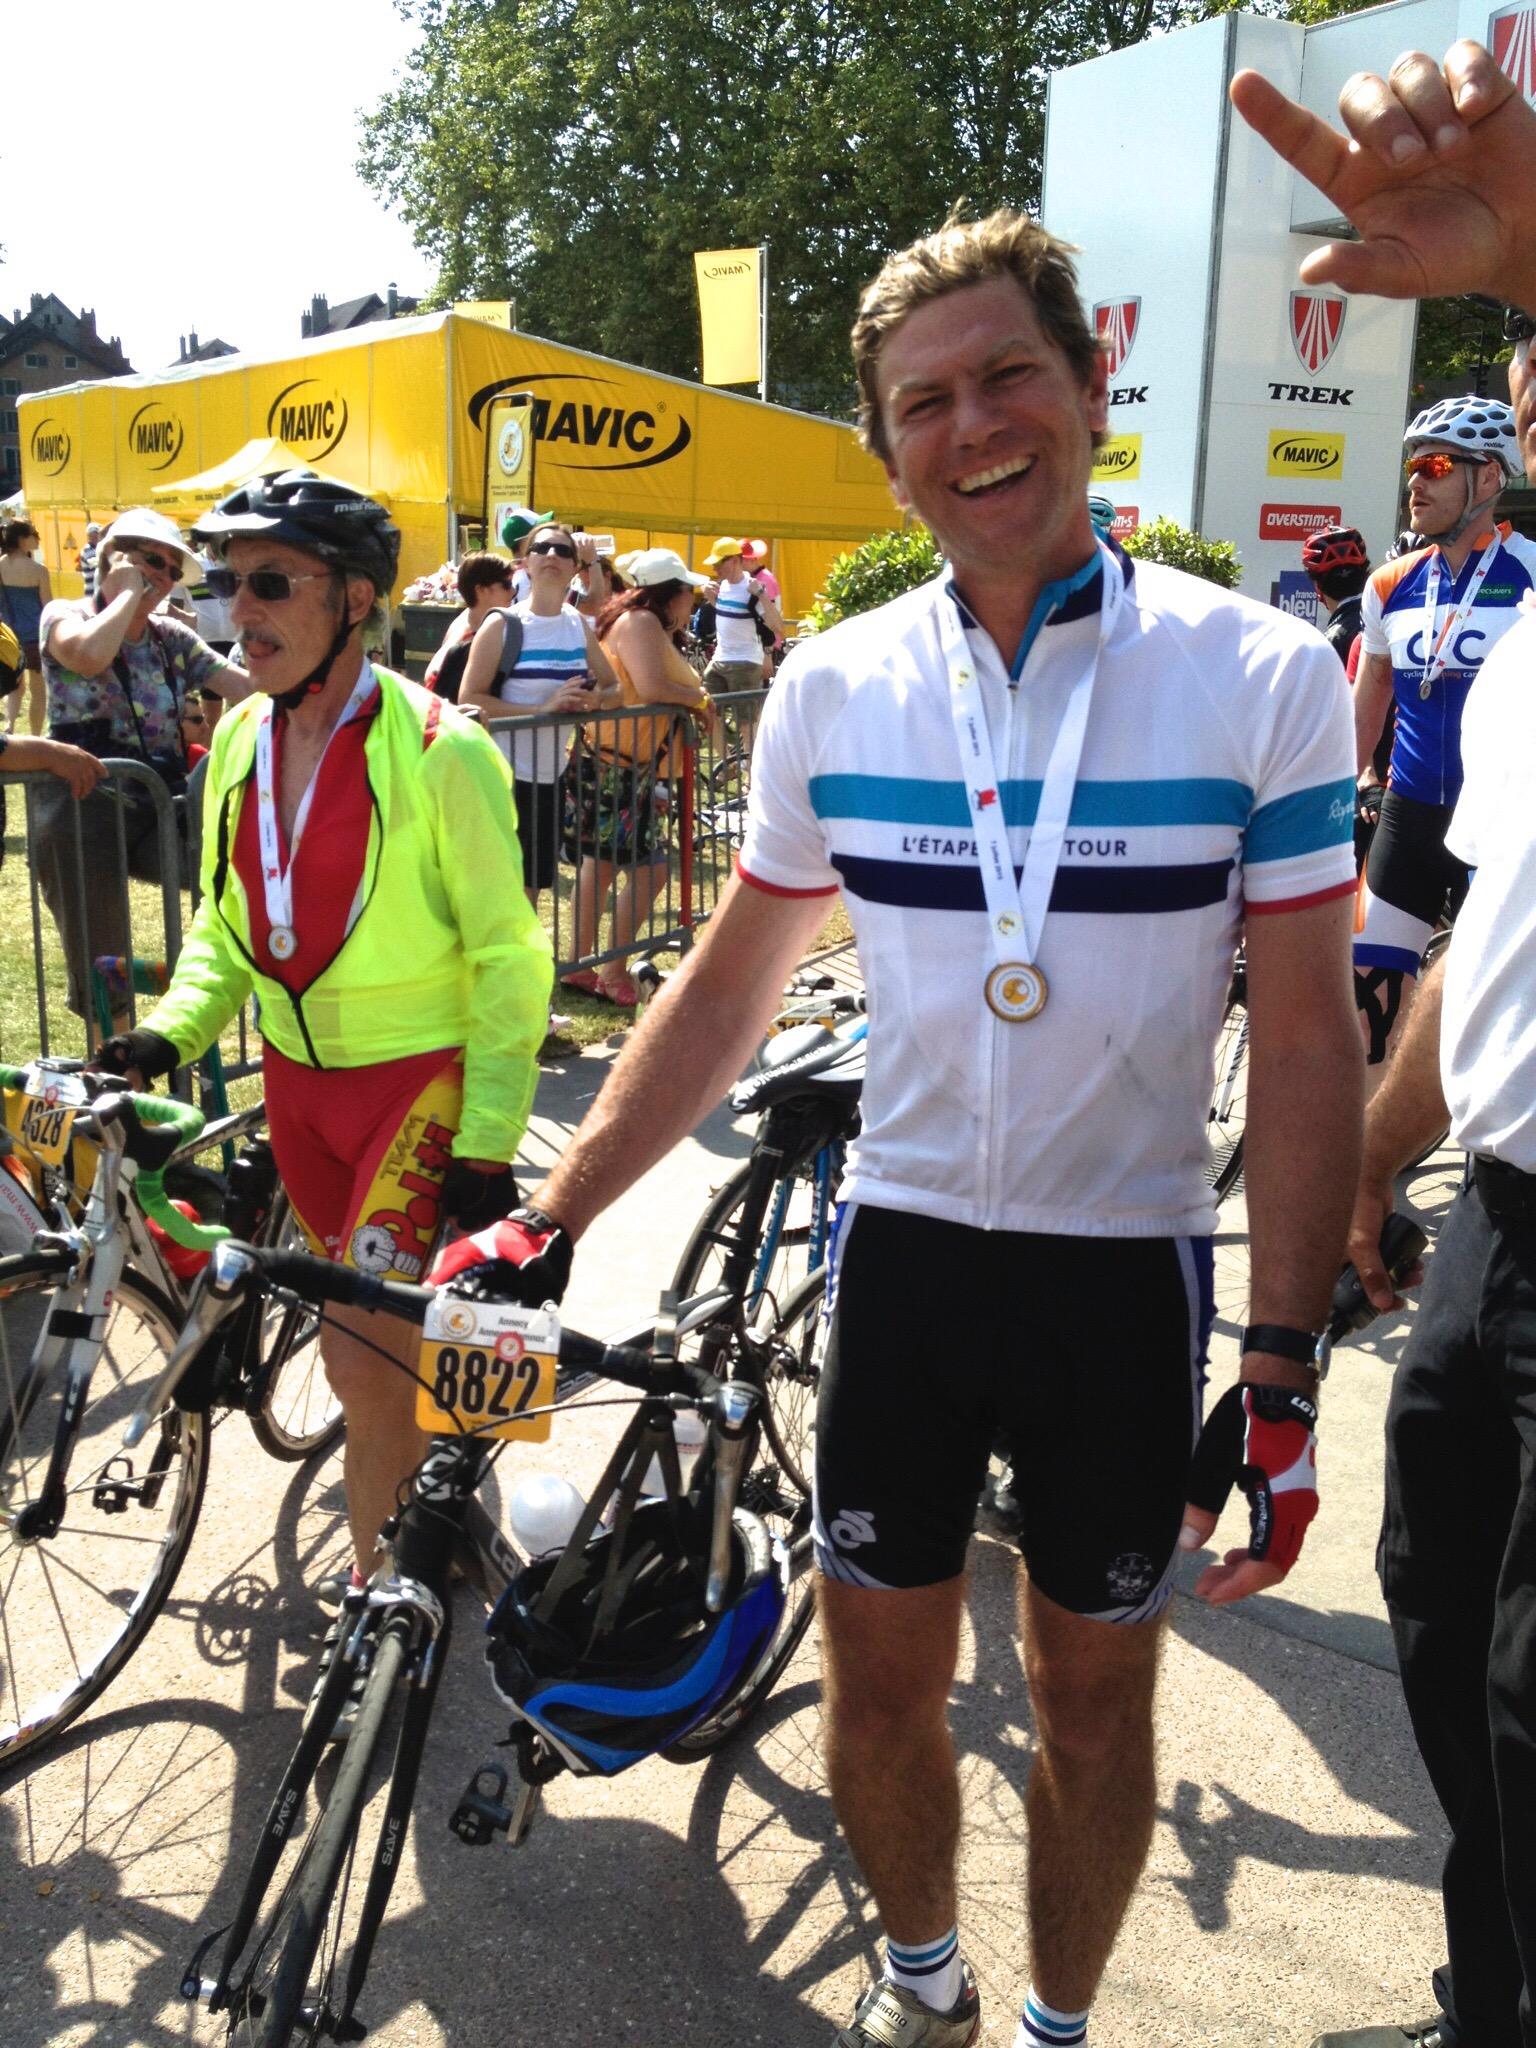 Elation on completing the 2013 L'Etape du Tour in Annecy